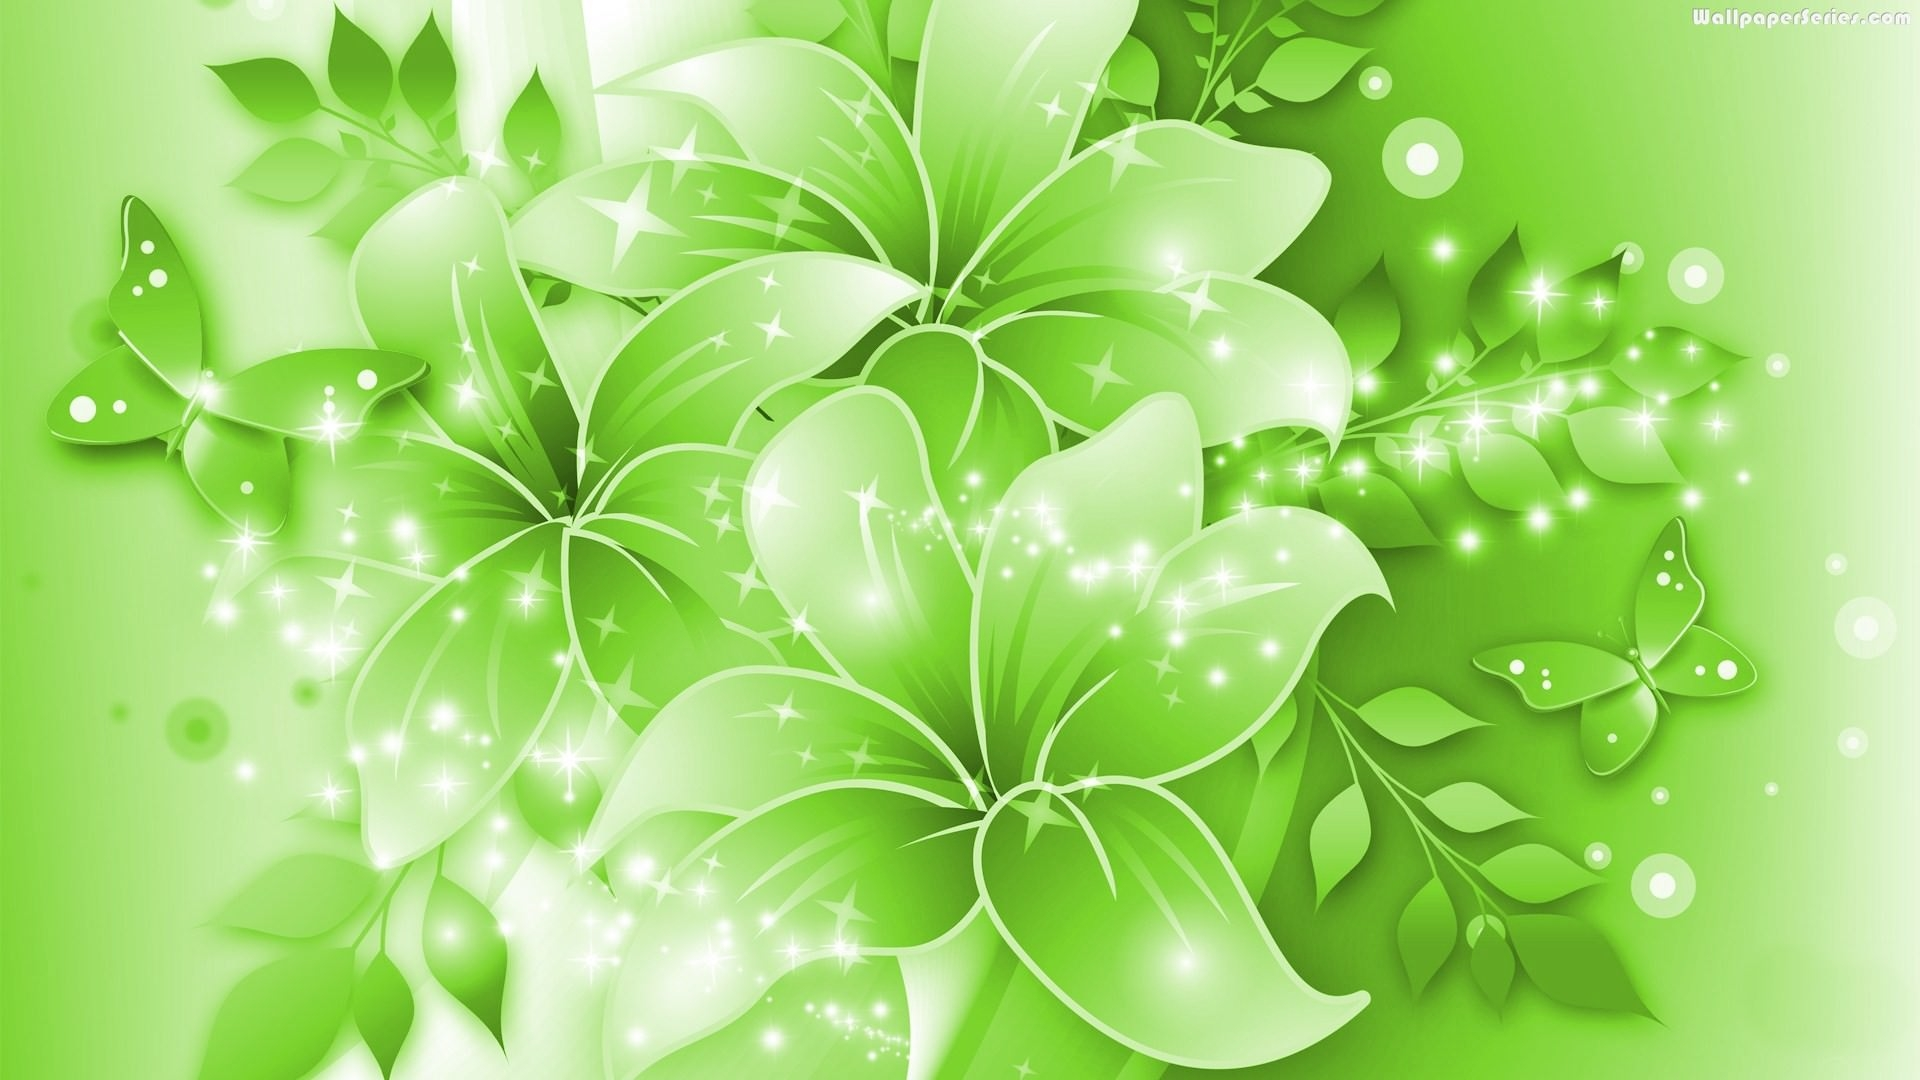 Animated Green Floral Wallpaper